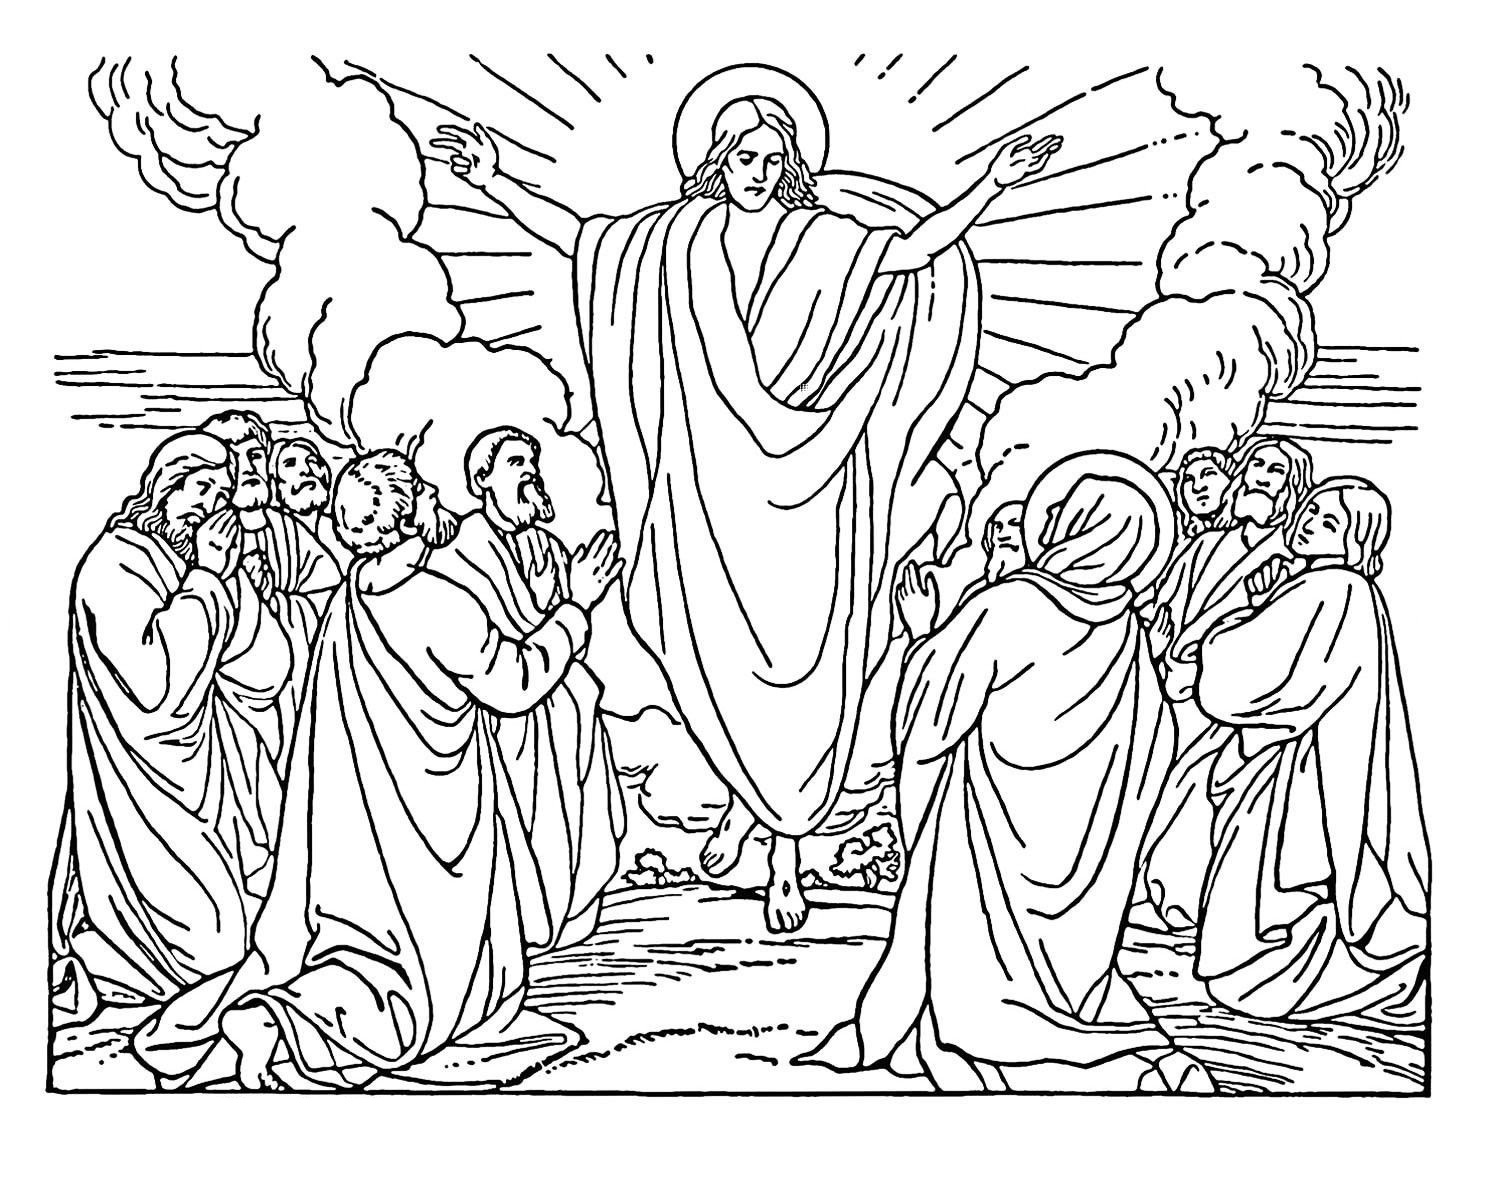 bible coloring pages for preschoolers j is for jesus bible alphabet coloring page coloring pages bible for preschoolers